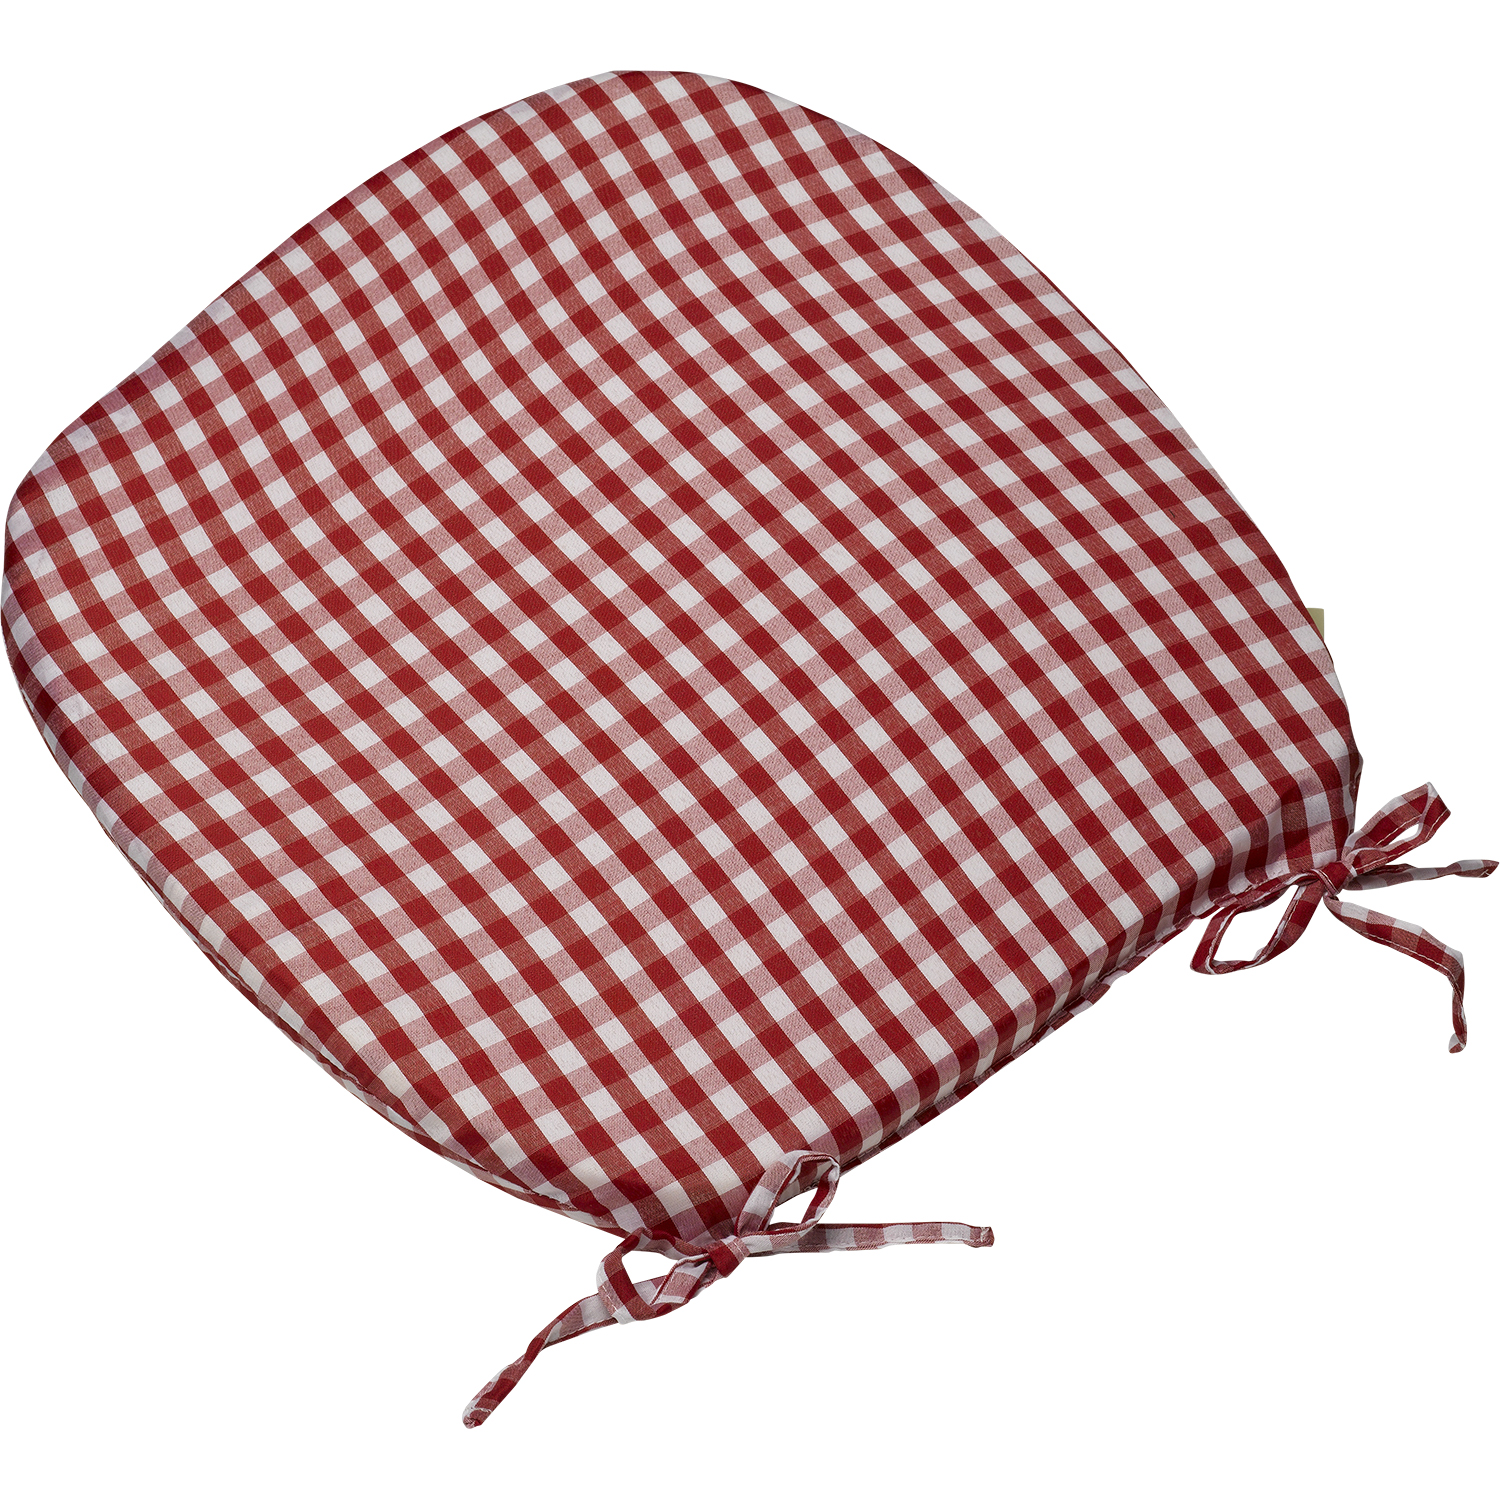 kitchen chair seat cushions with ties kitchen chair cushions Kitchen chair seat cushions with ties Gingham Check Tie On Seat Pad 16 X